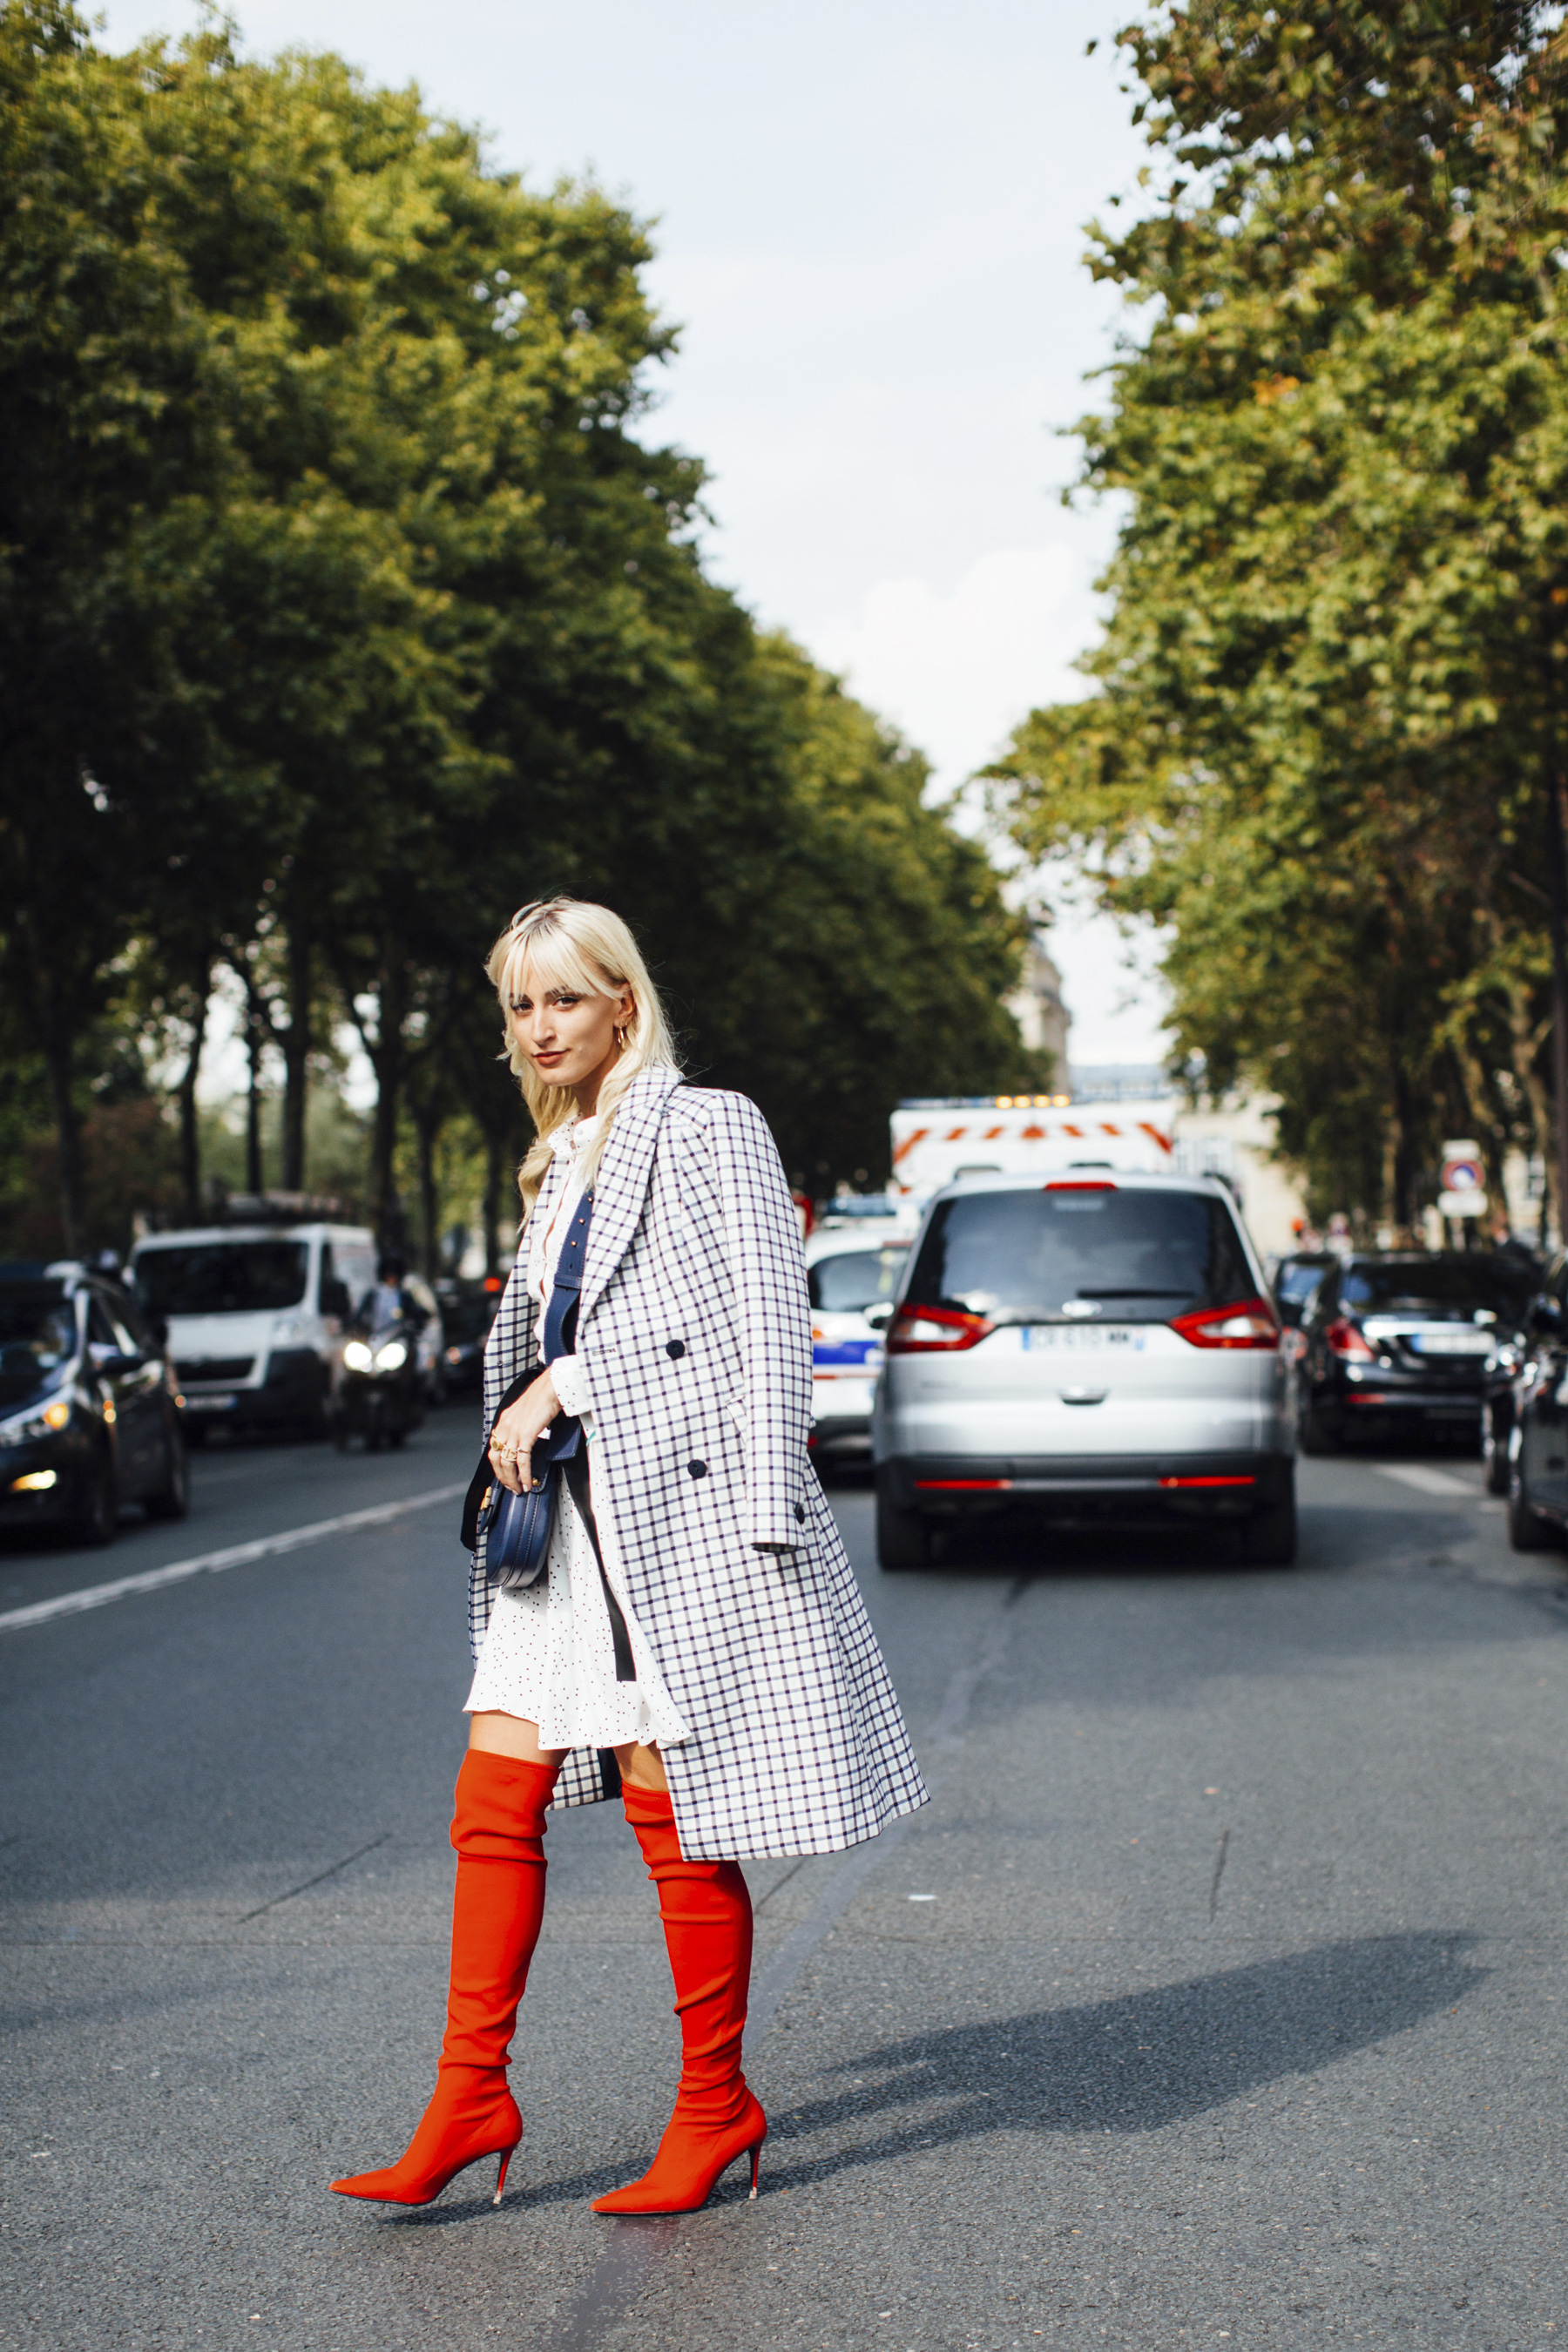 Paris Fashion Week Street Style Spring 2018 Day 1 Cont.